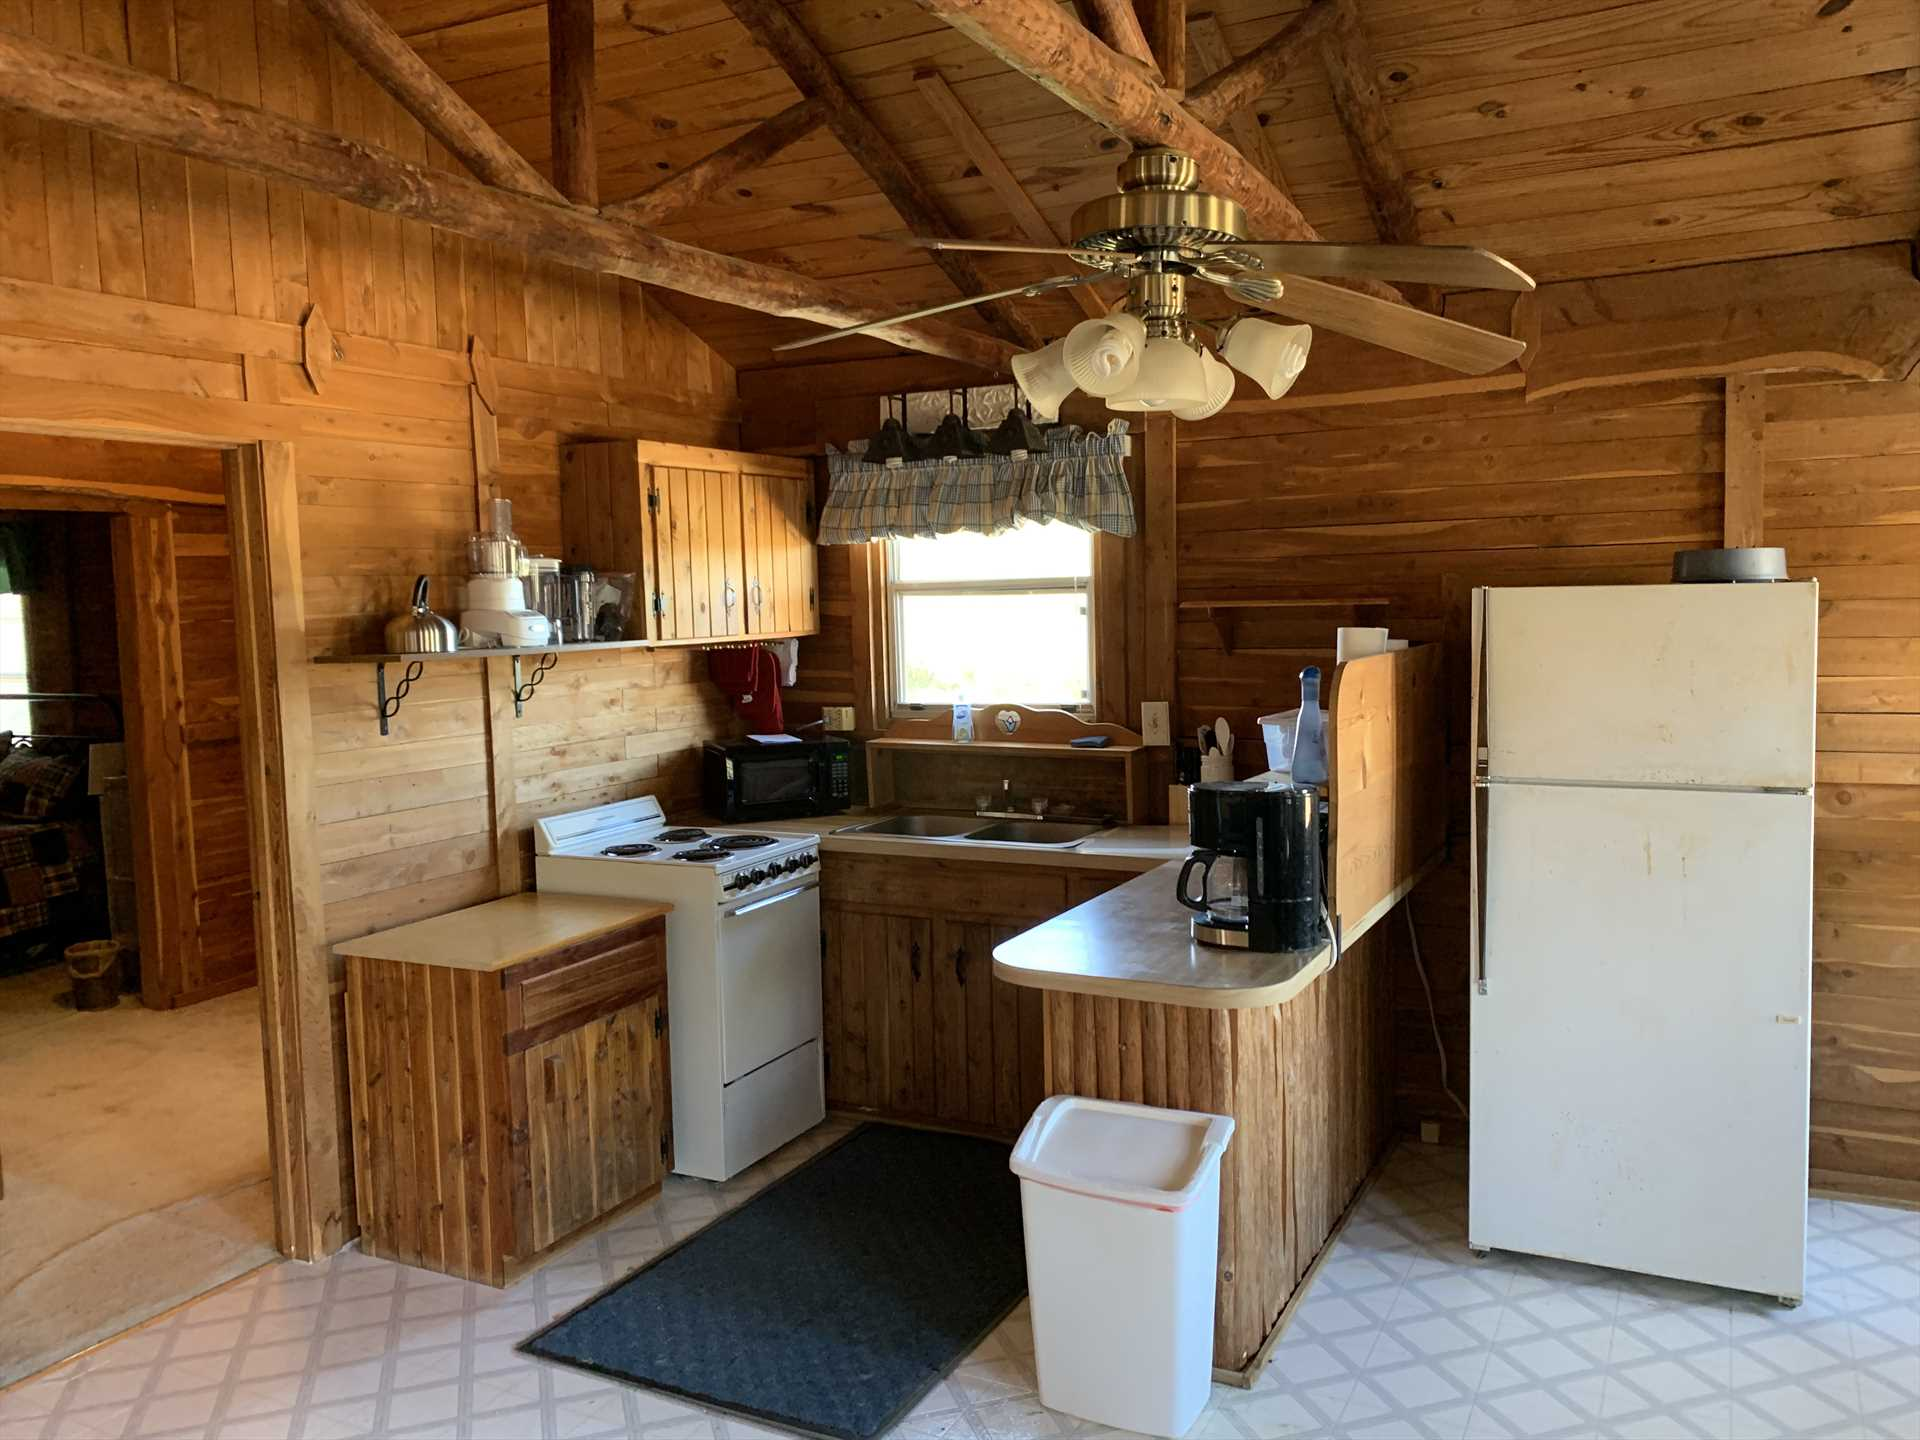 A stove, fridge, microwave, and coffee maker are all in the Hill House's kitchen-as well as a wood-burning grill outside!